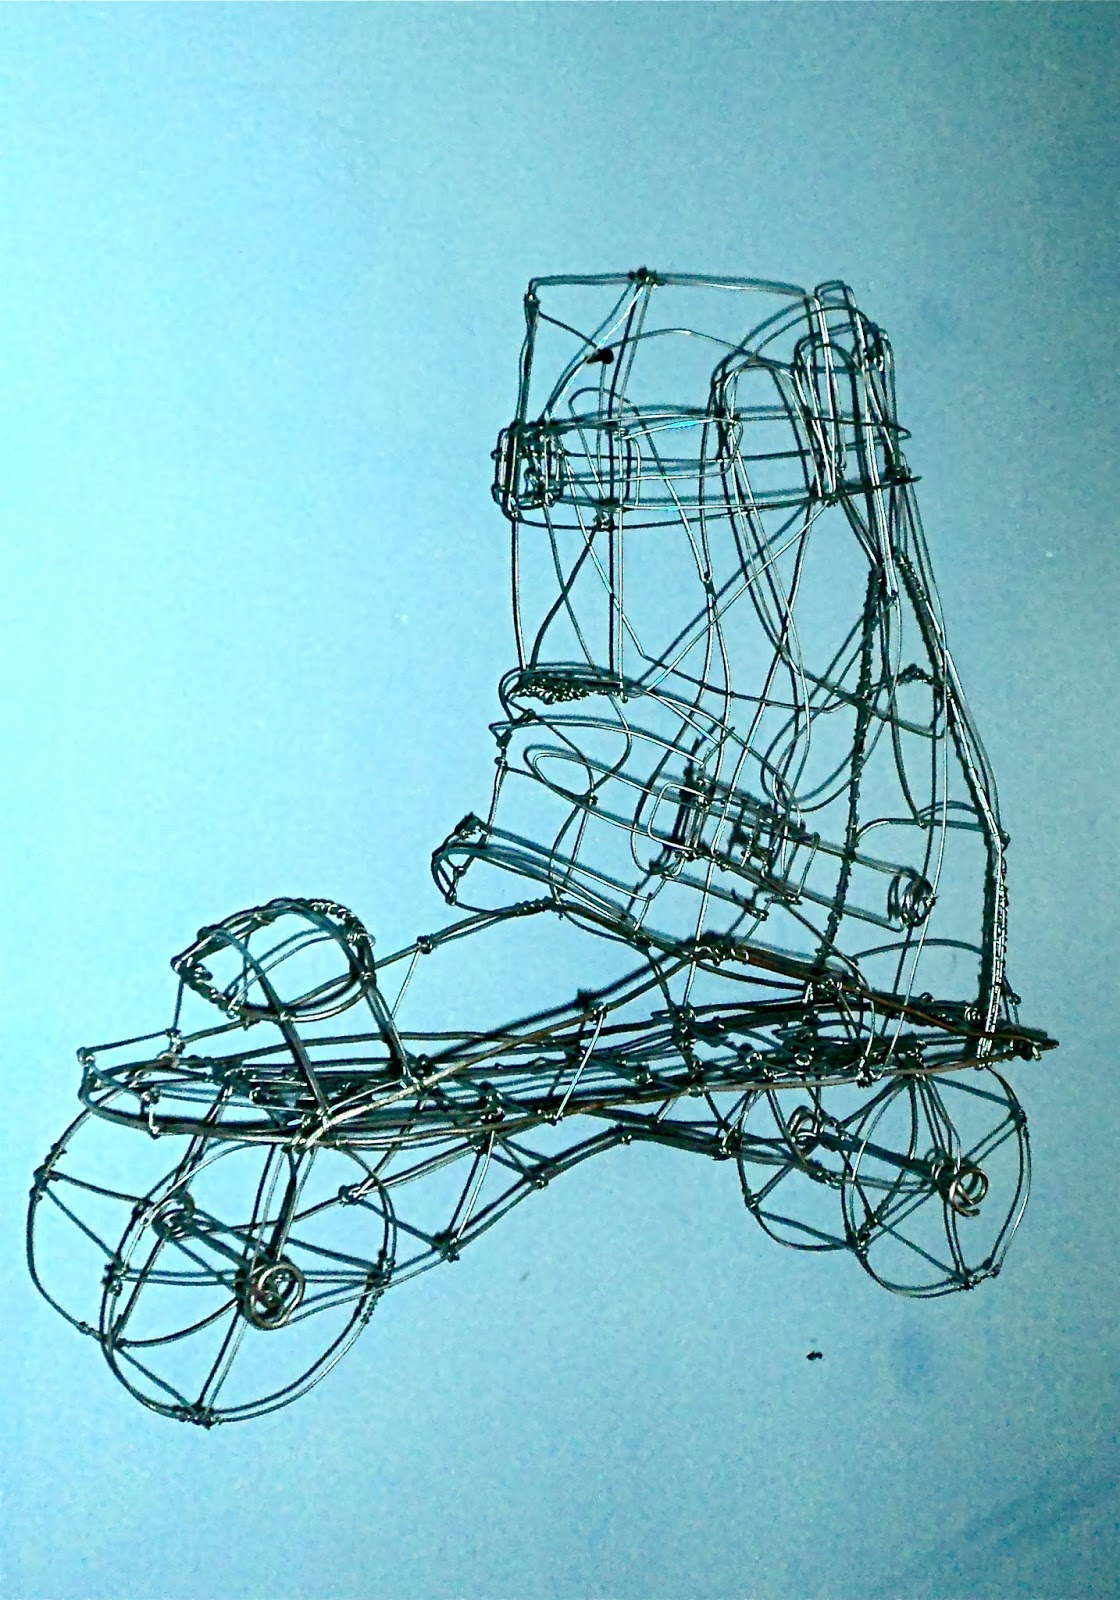 Z. Meunier Art Blog: wire frame sculpture, xsjado skate, wire armature